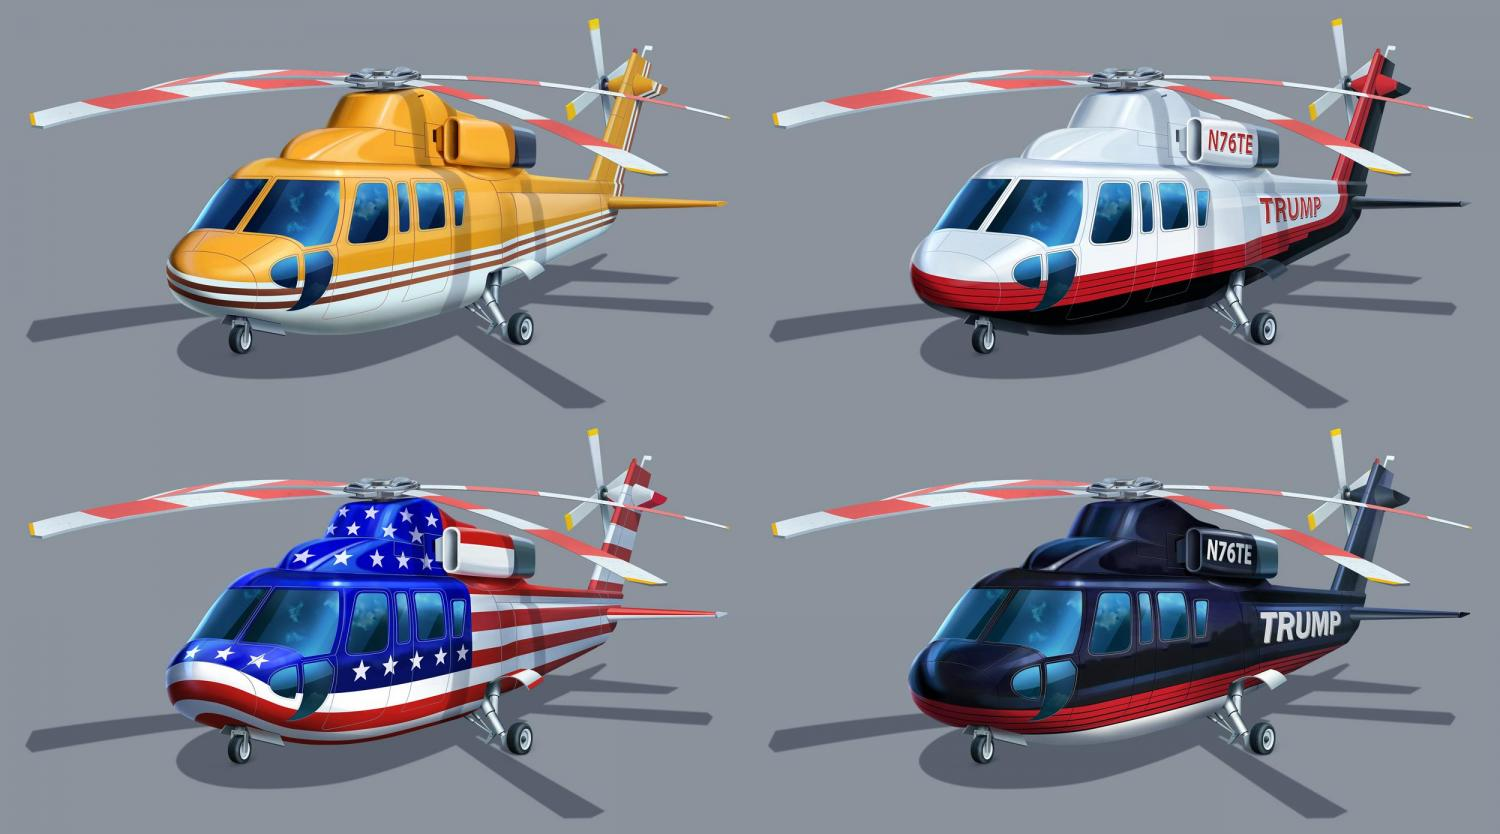 Helicopters.thumb.jpg.a1ca77591a55940a05